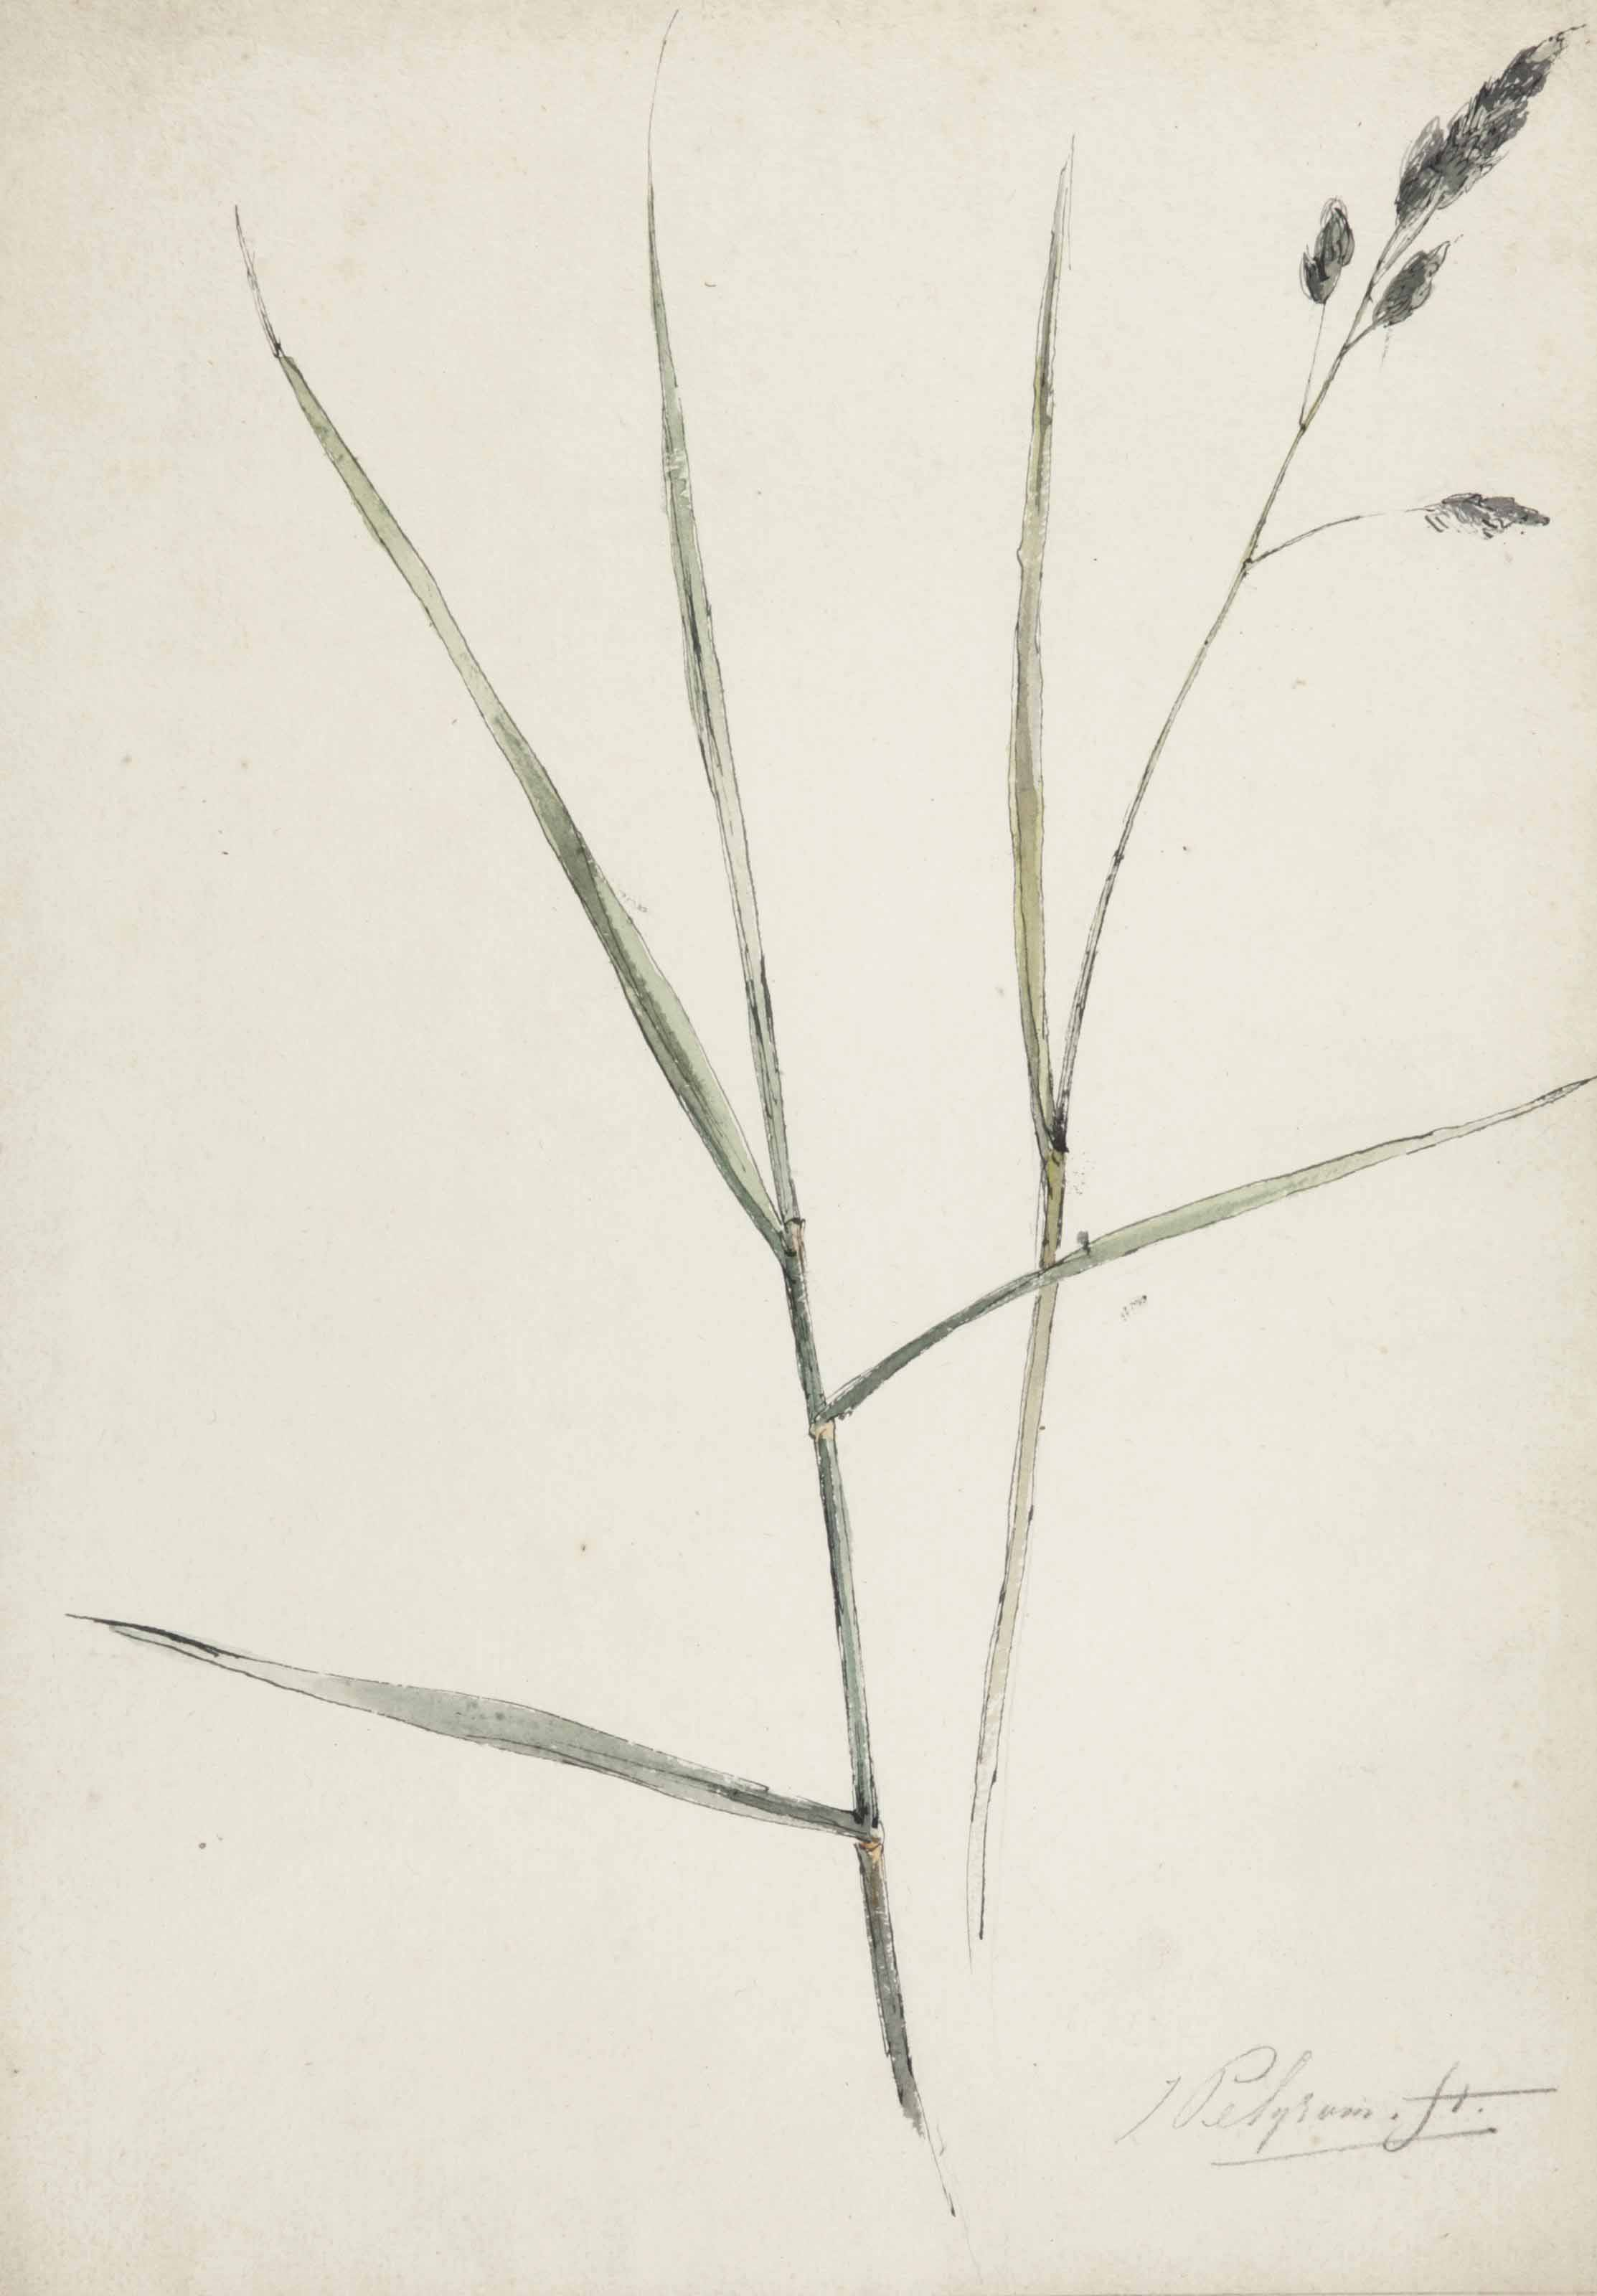 Study of grass or sedge